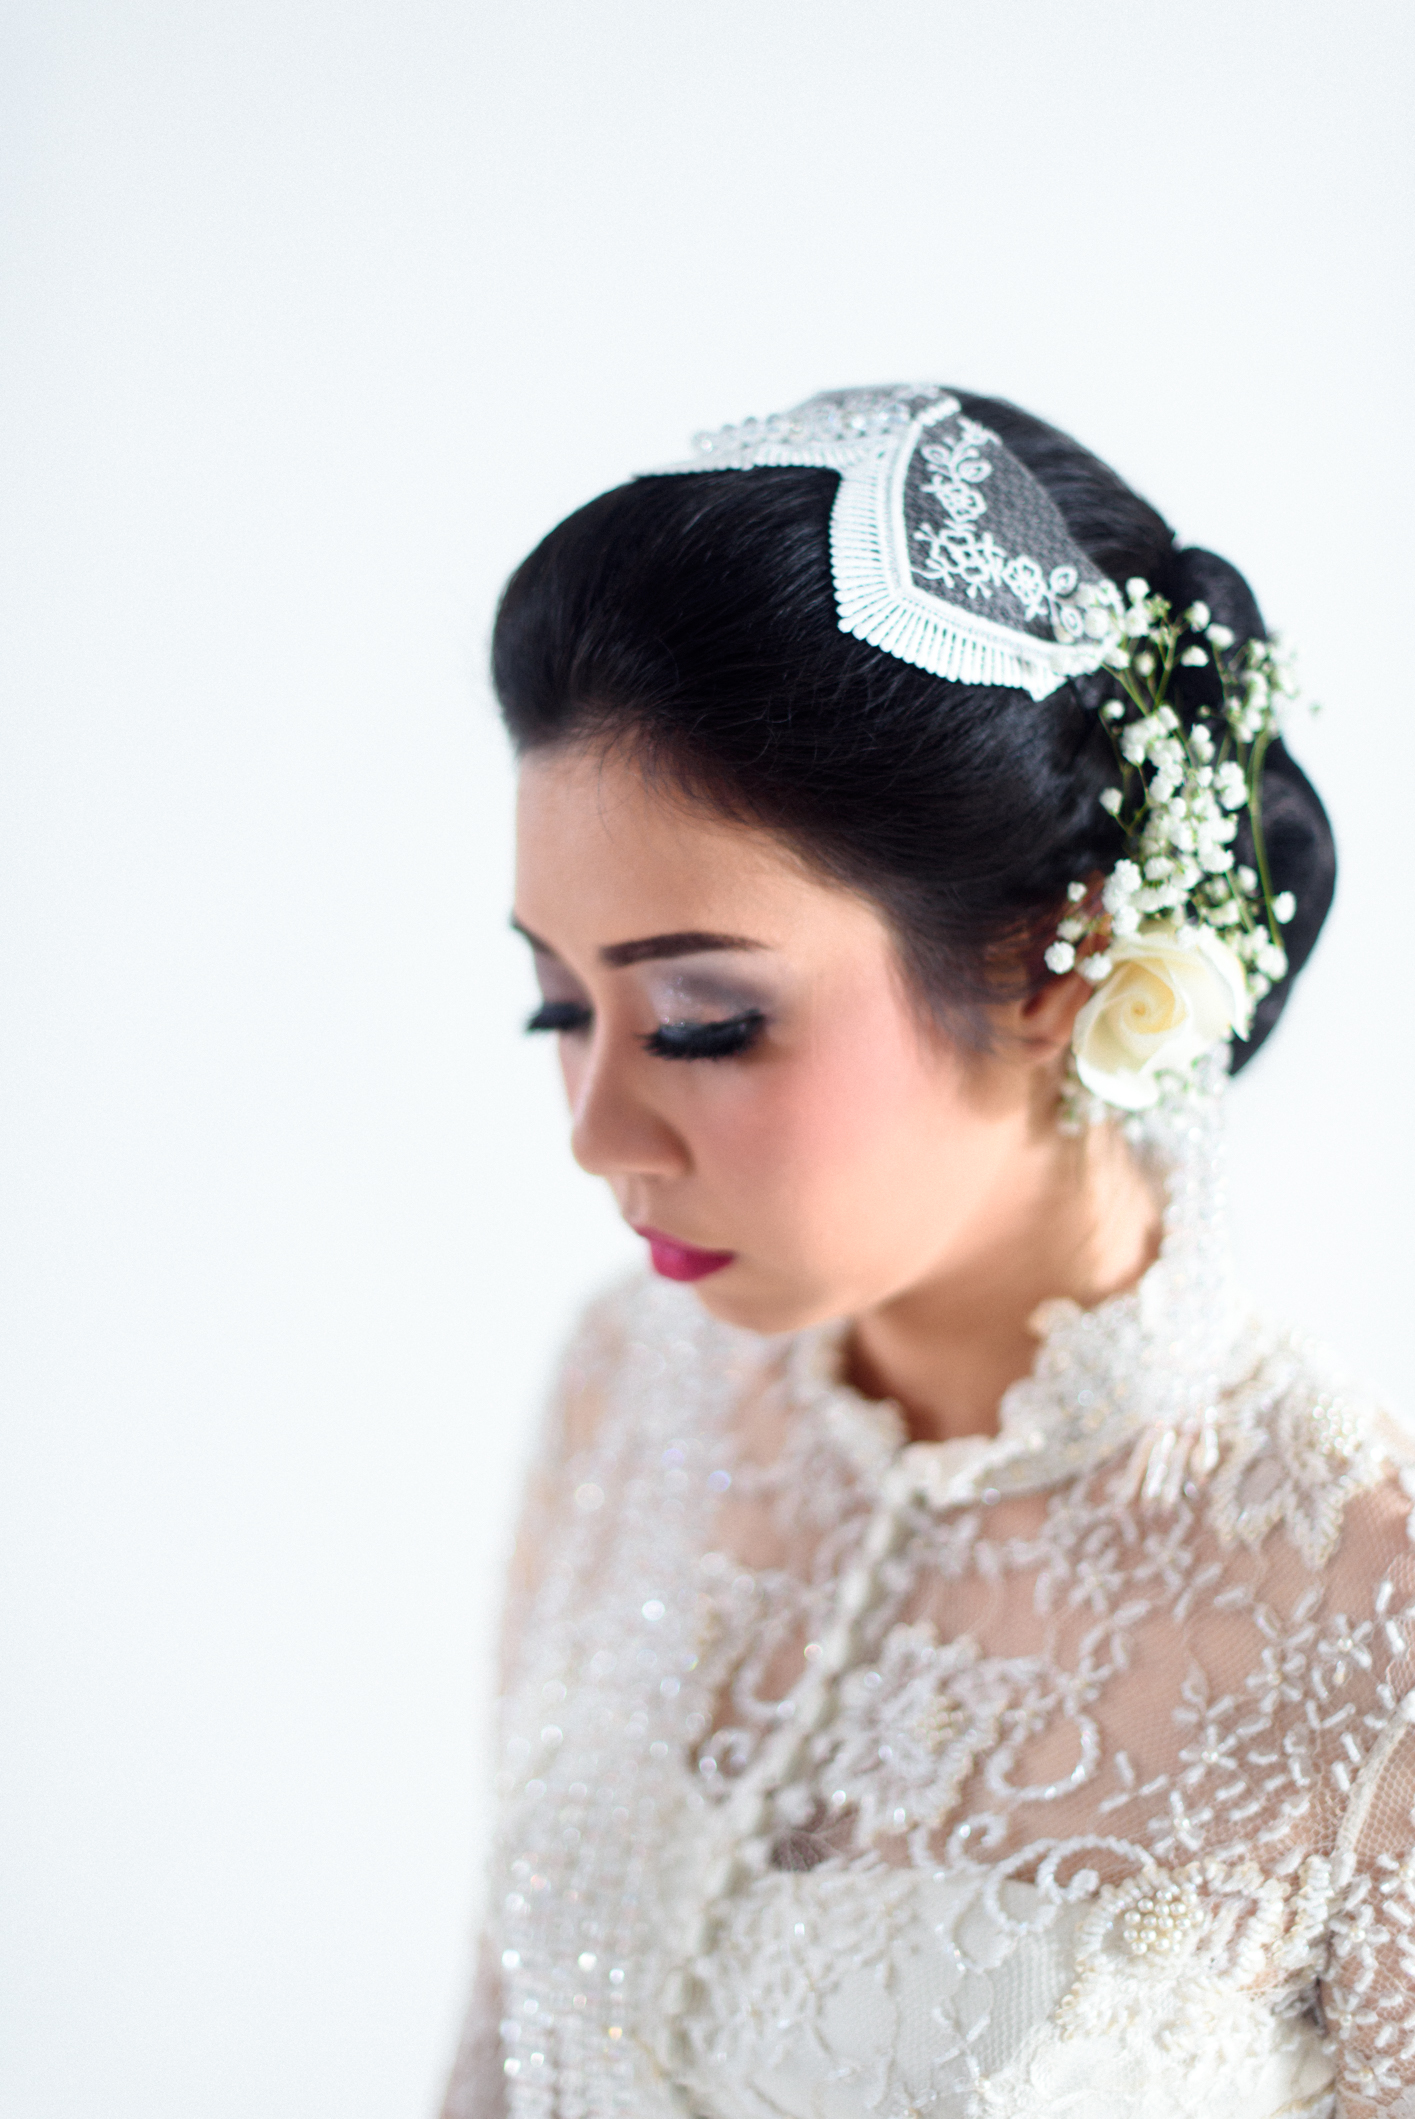 directory of wedding accessories & headpiece vendors in jakarta